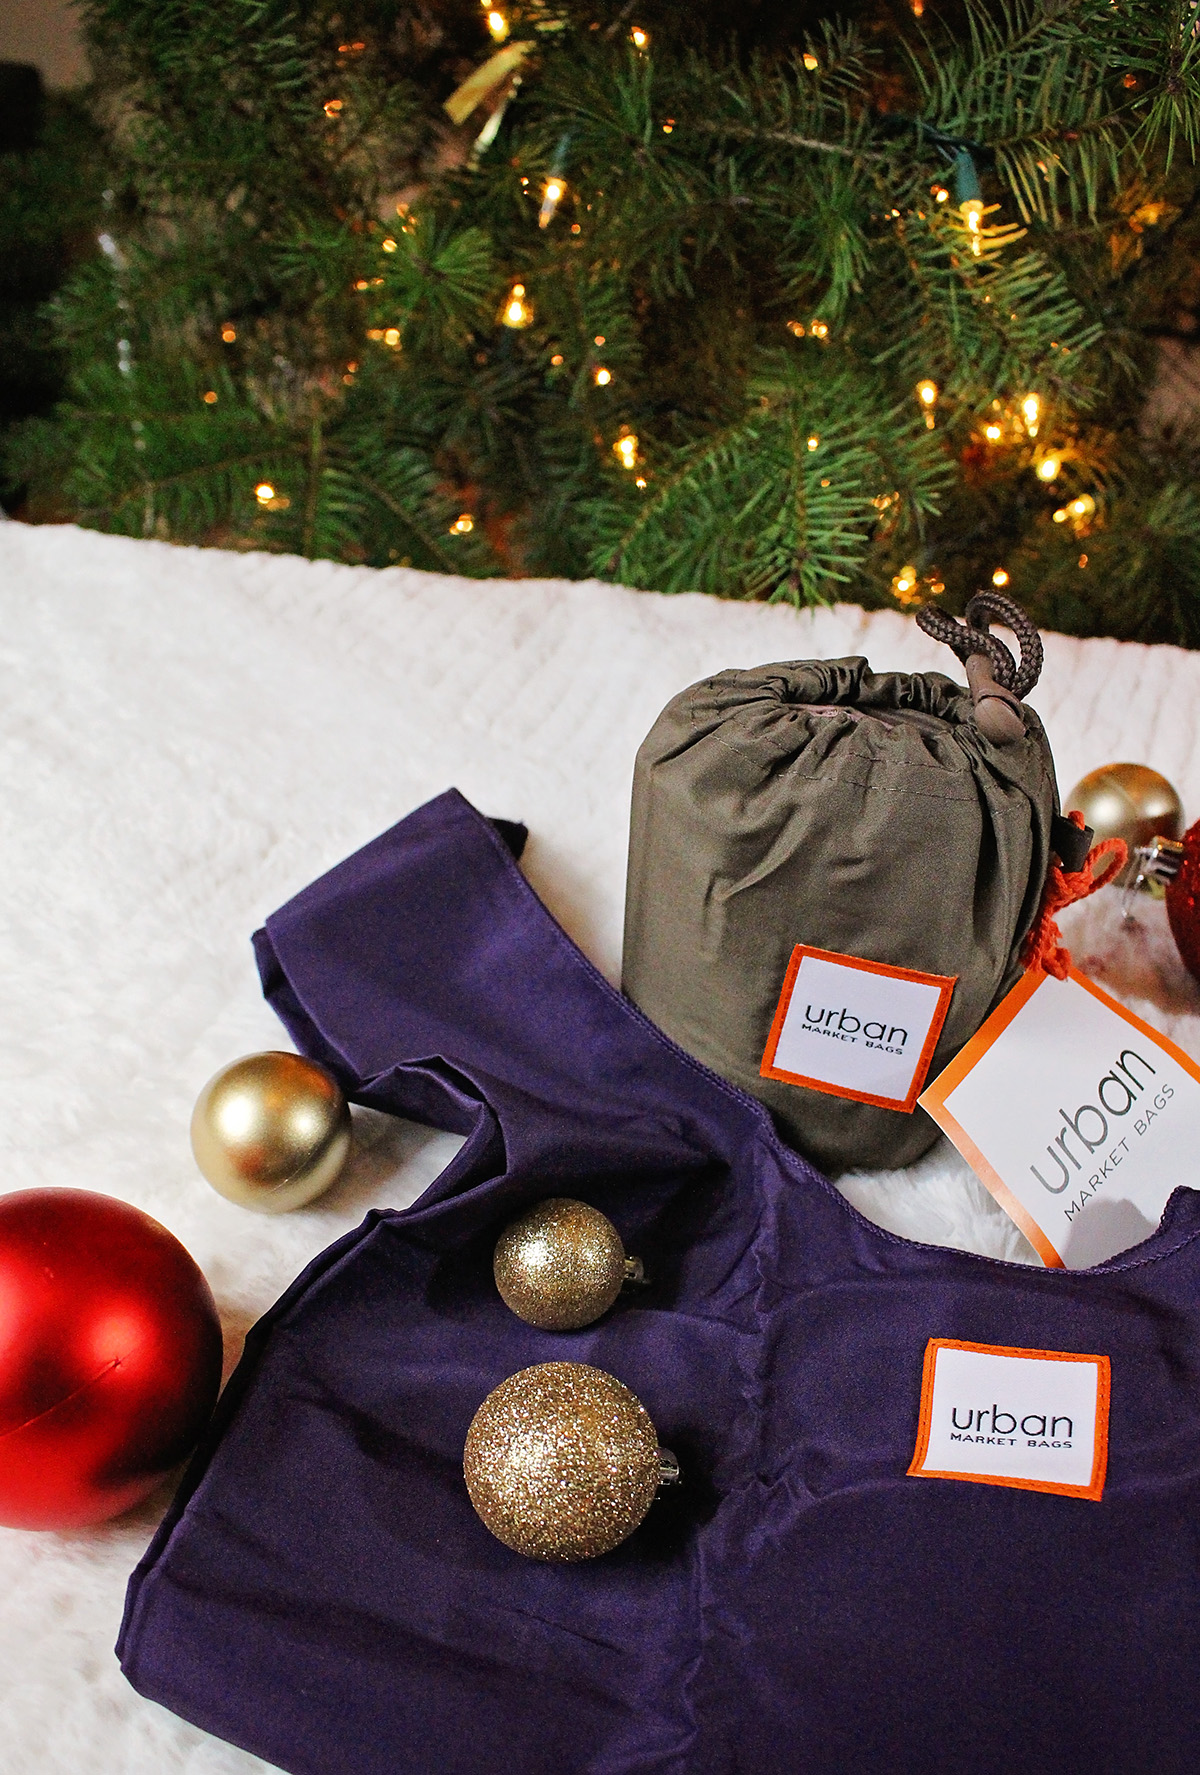 Urban Market Bags - 2016 Gift Guide (sponsored) A Well Crafted Party